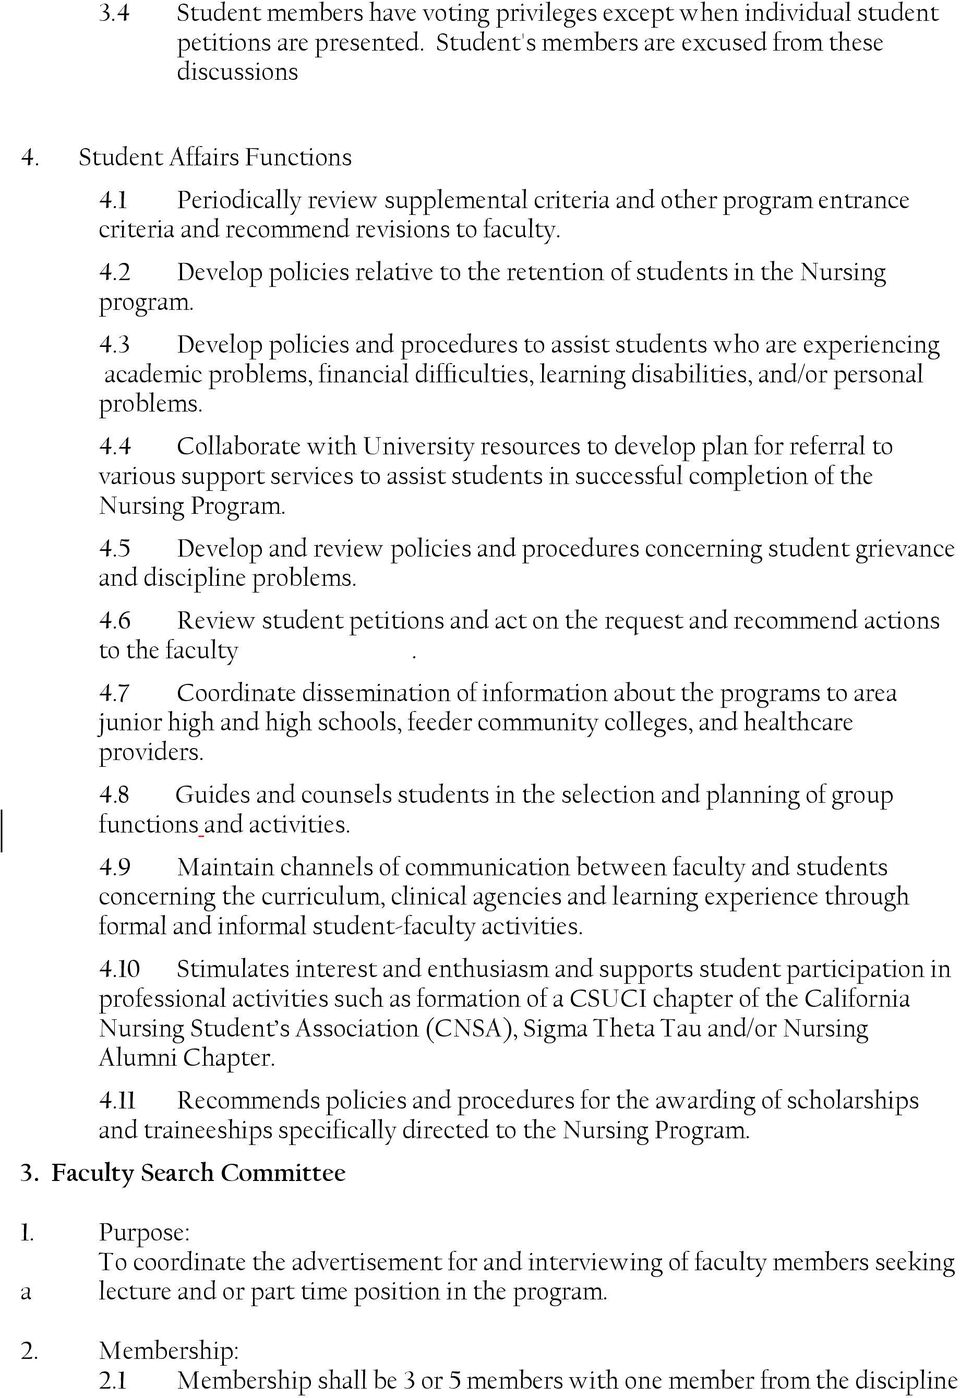 4.3 Develop policies and procedures to assist students who are experiencing academic problems, financial difficulties, learning disabilities, and/or personal problems. 4.